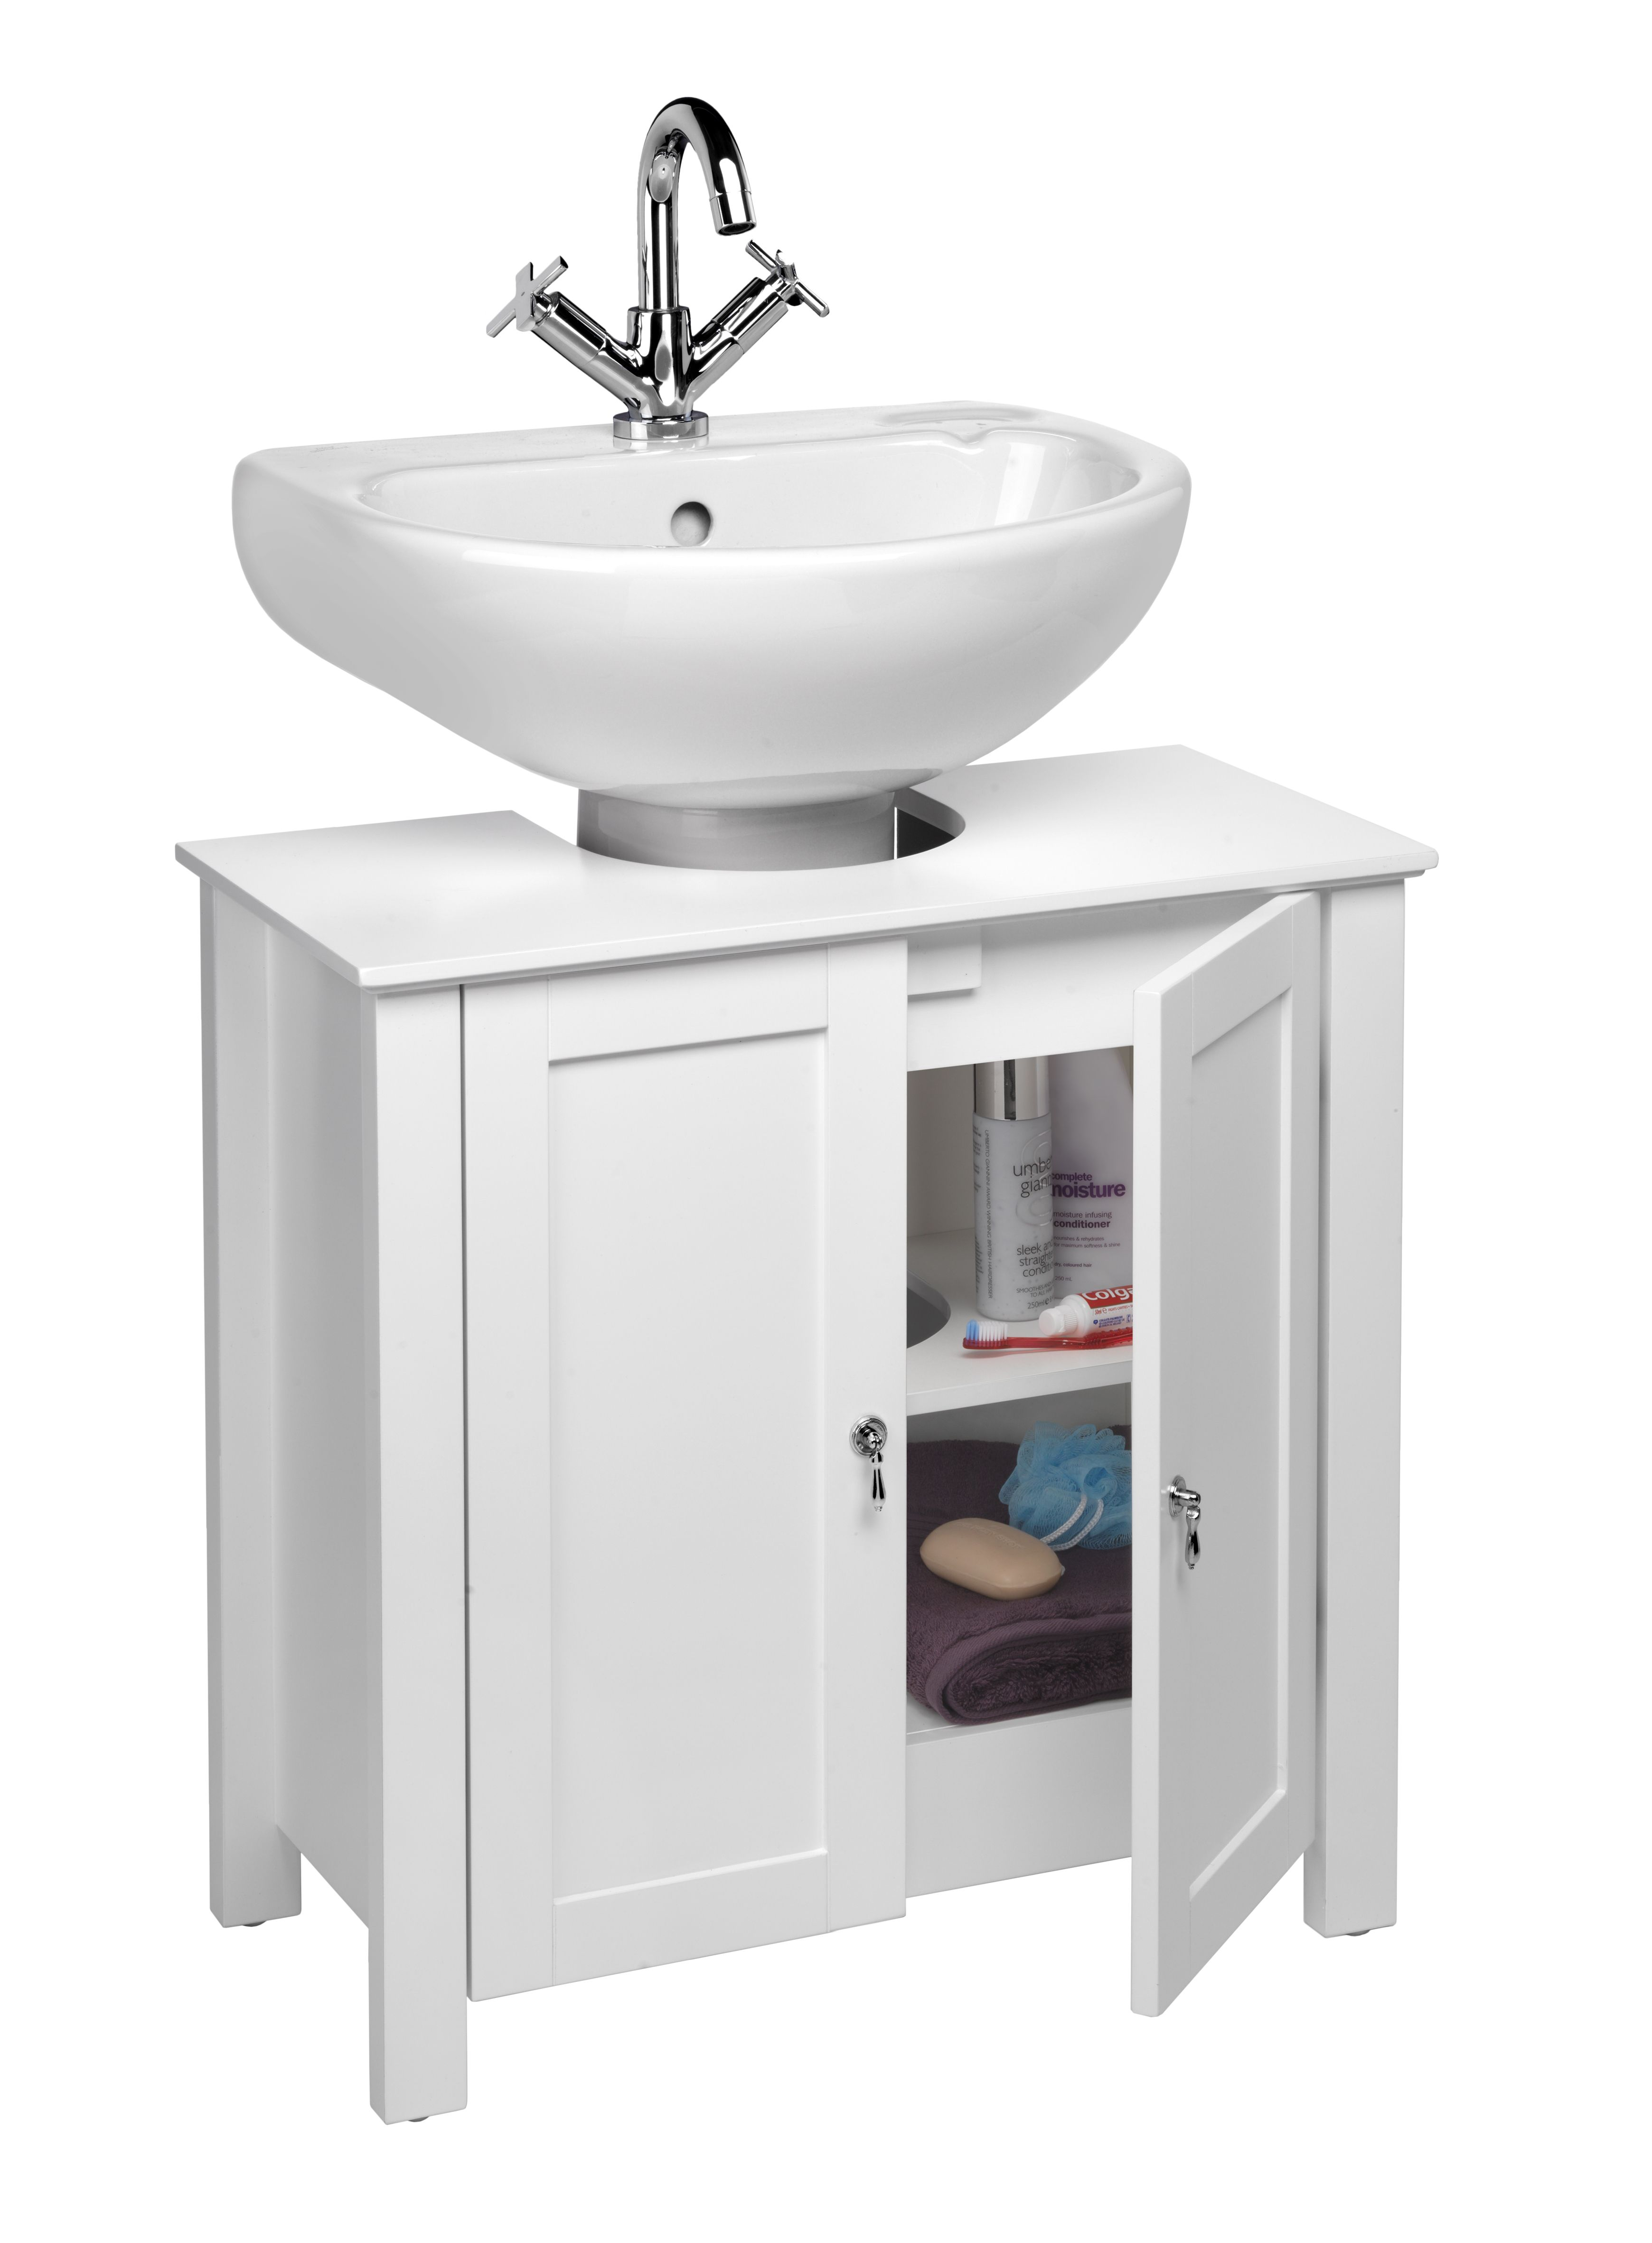 Irewell Under Basin Storage Unit | Ideas for the House | Pinterest ...